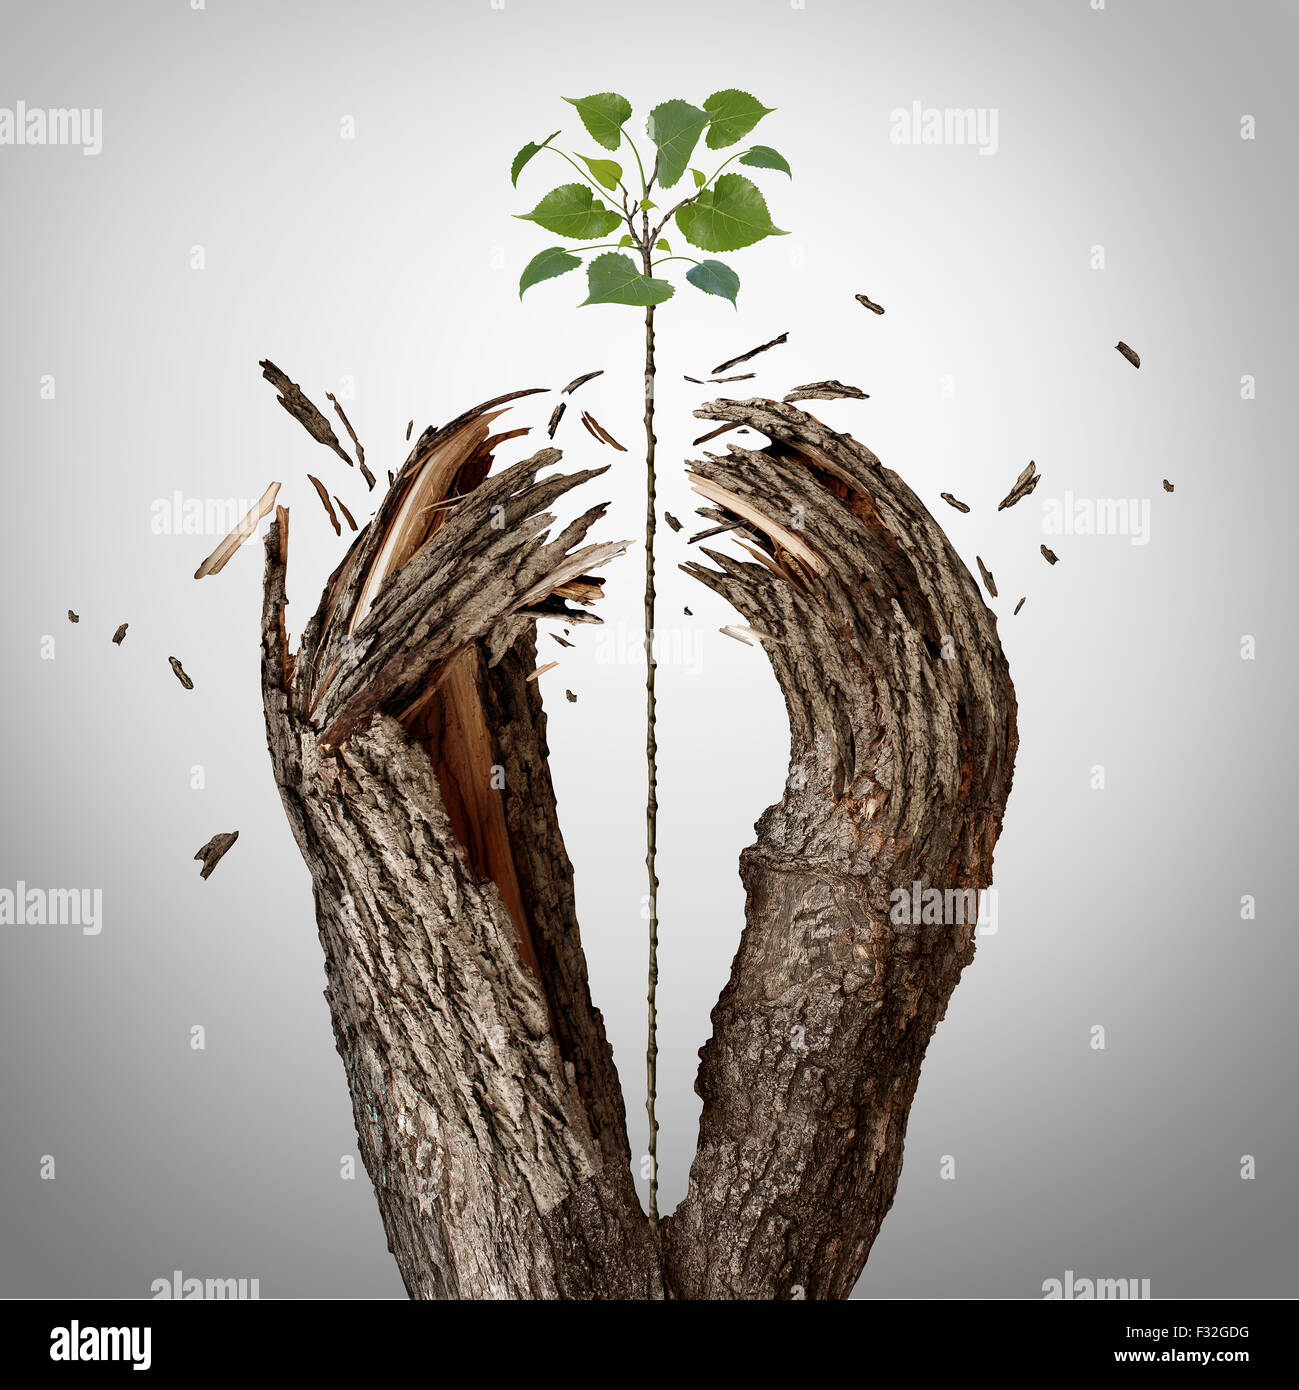 Breaking through concept as a green sapling growing upward and destroying a tree barrier as a business success metaphor - Stock Image